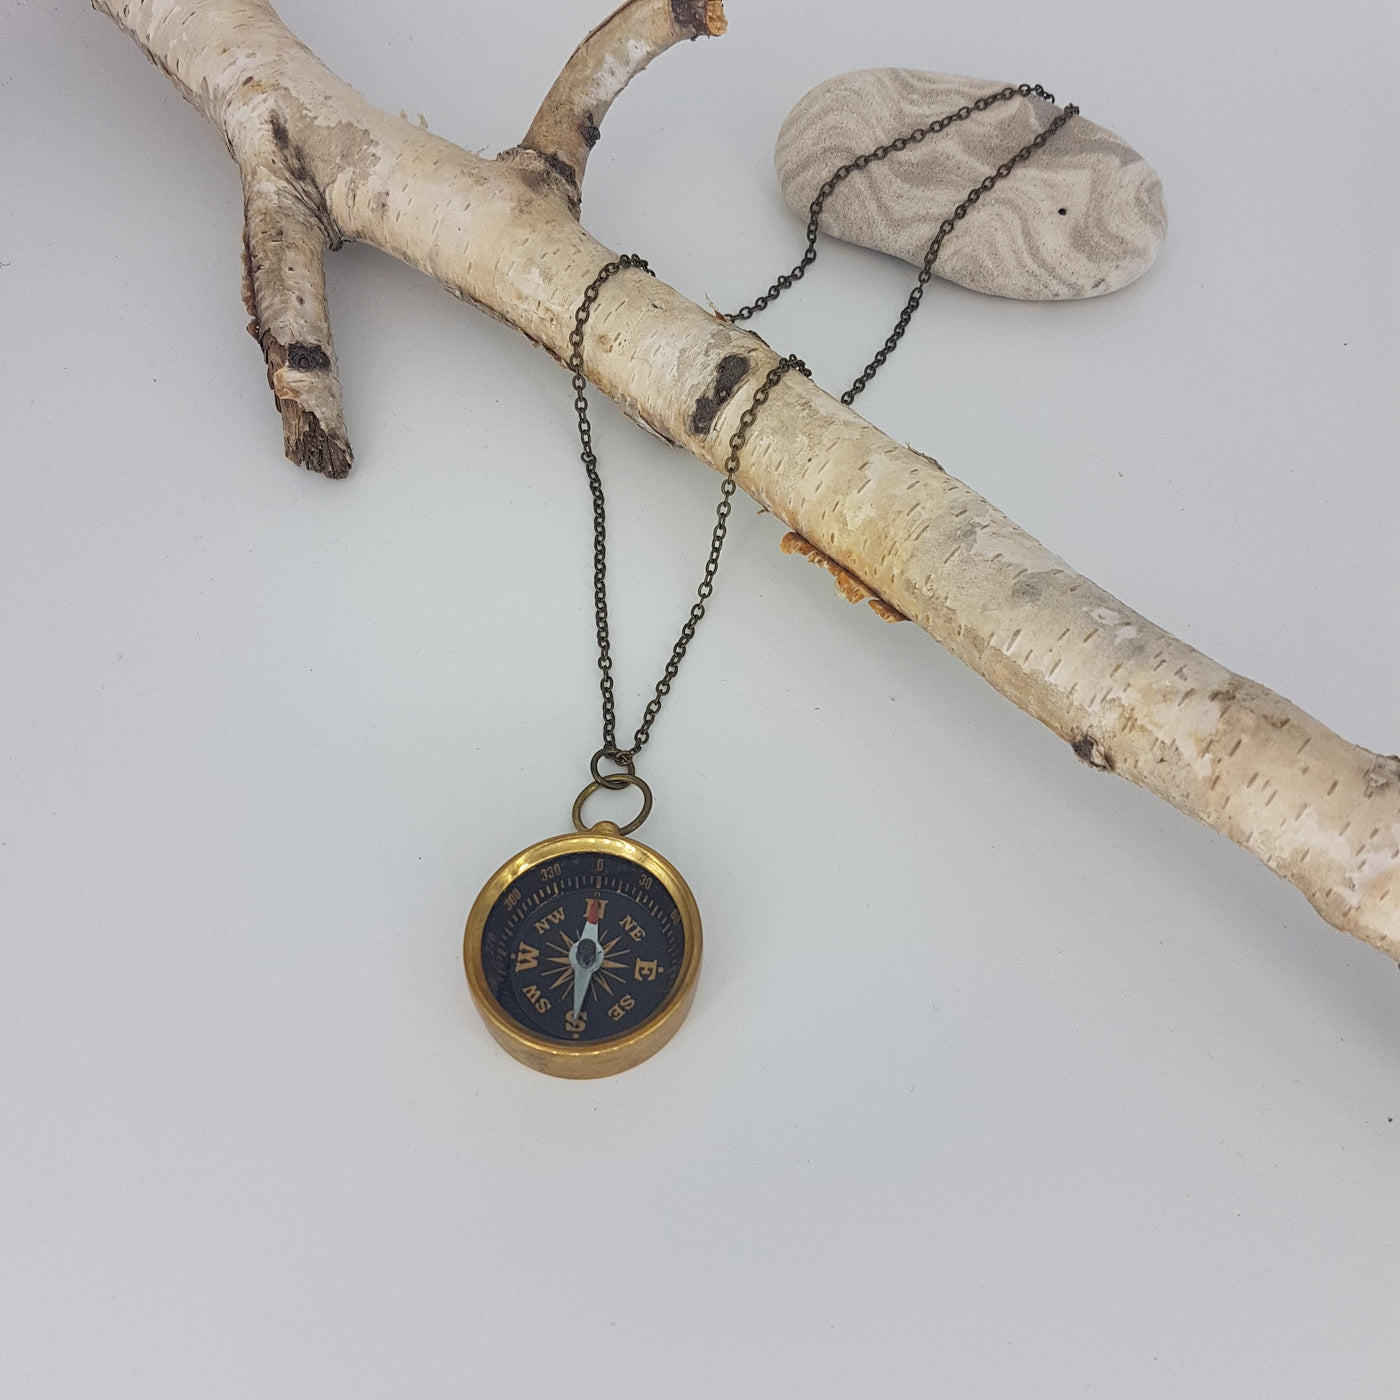 True North Brass Compass Necklace